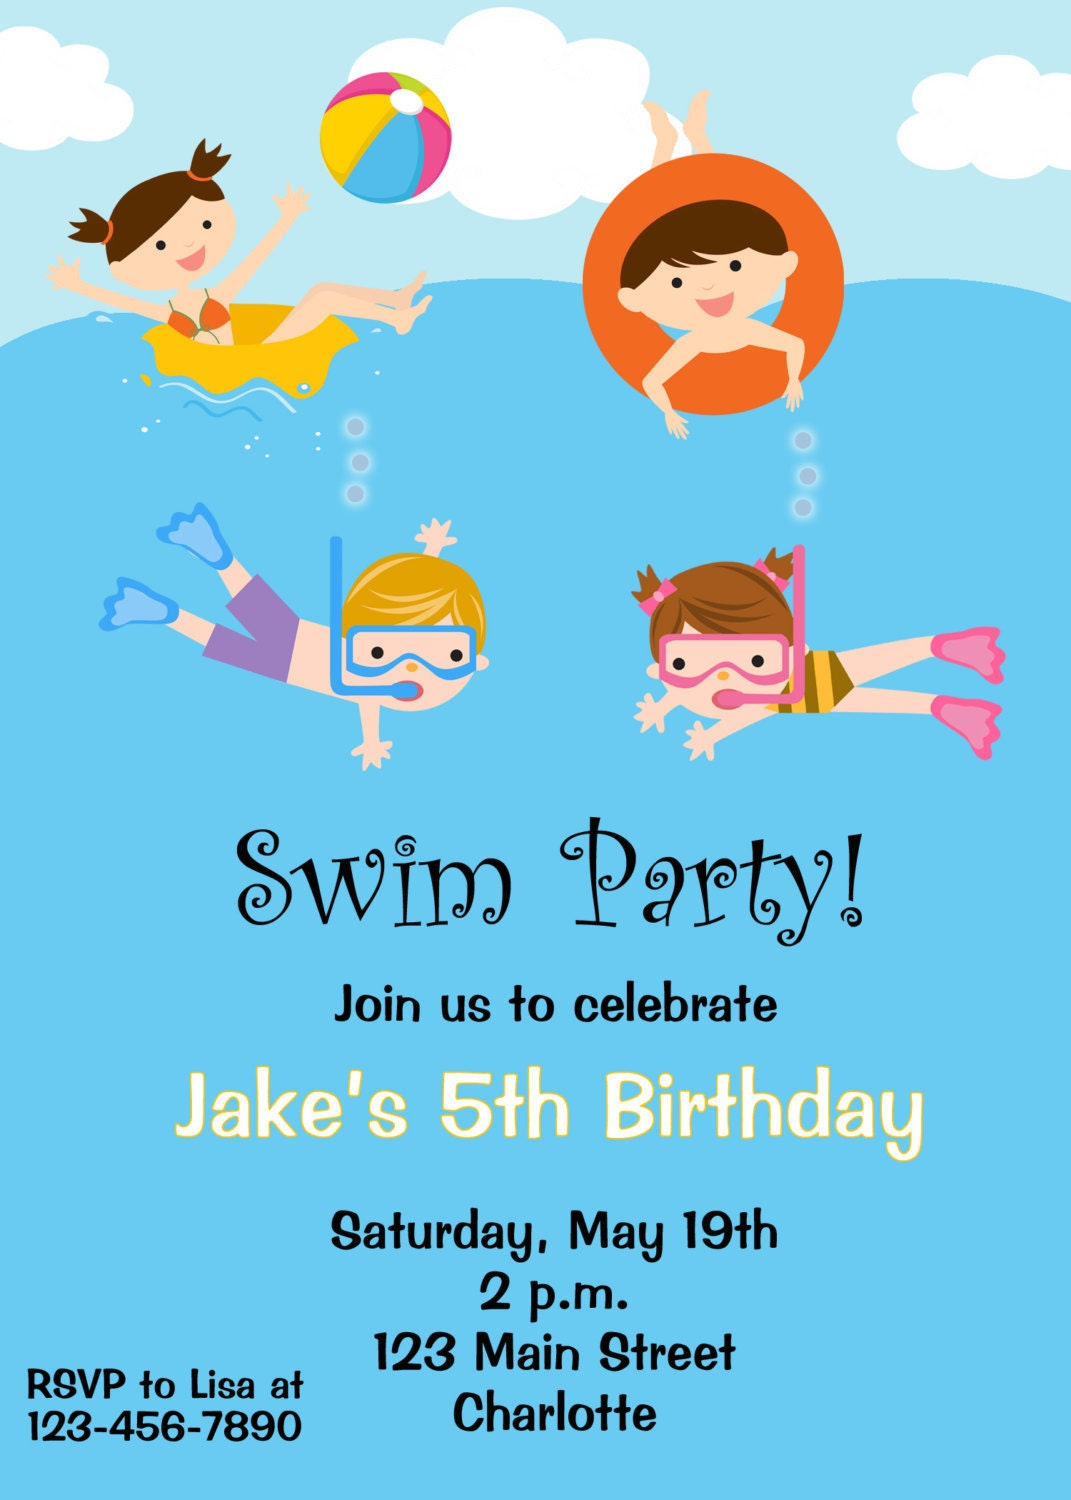 Pool party birthday invitation pool party pool toys – Swim Party Invitation